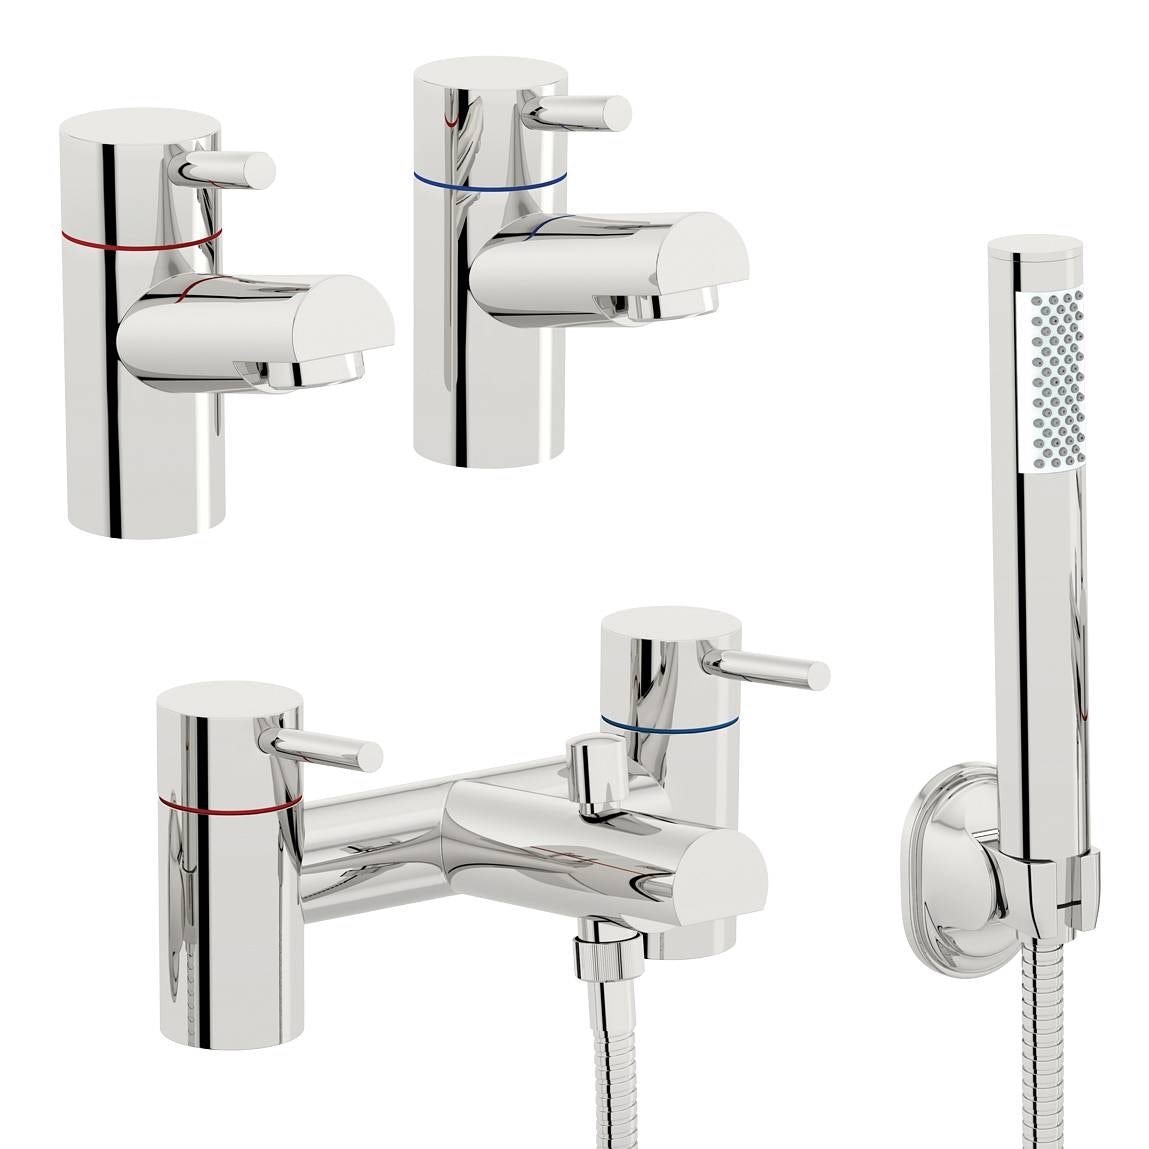 Orchard Wharfe basin tap and bath shower mixer tap pack